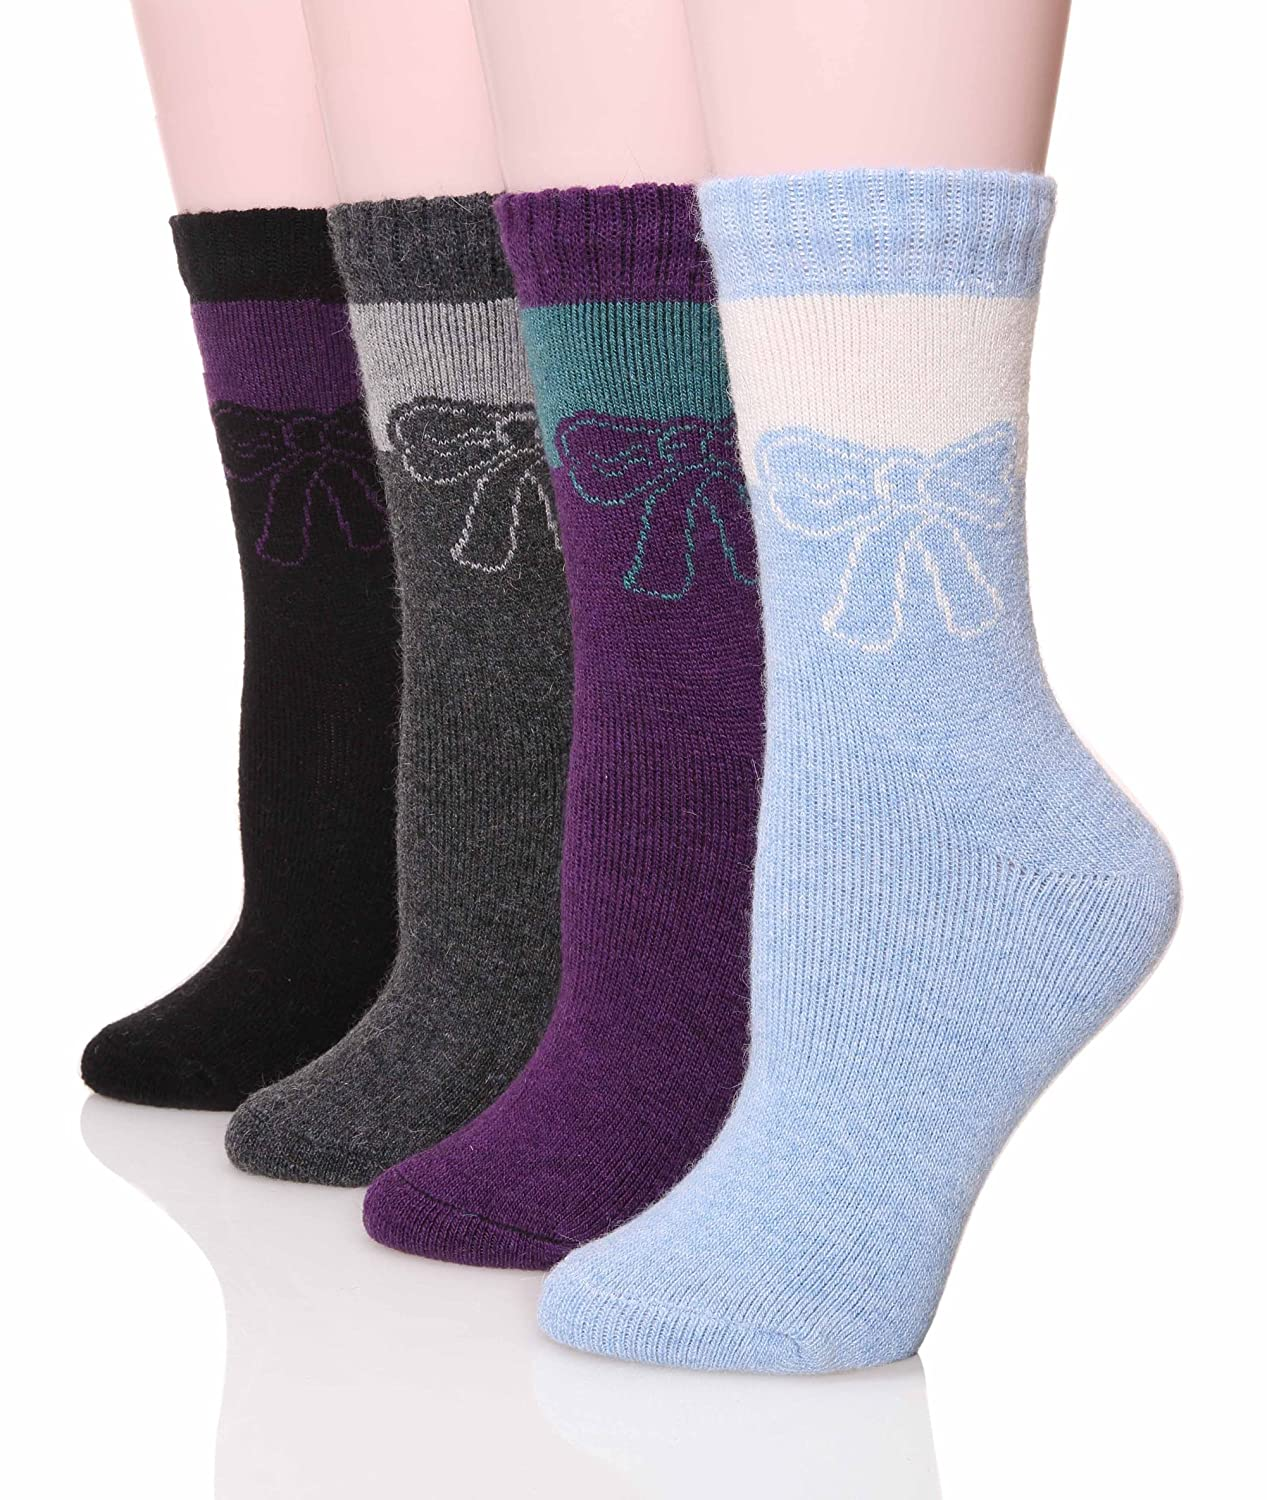 1950s Socks- Women's Bobby Socks SDBING Womens Extra Thick Colorful Winter Warm Soft Socks ( Pack of 4 ) $15.99 AT vintagedancer.com